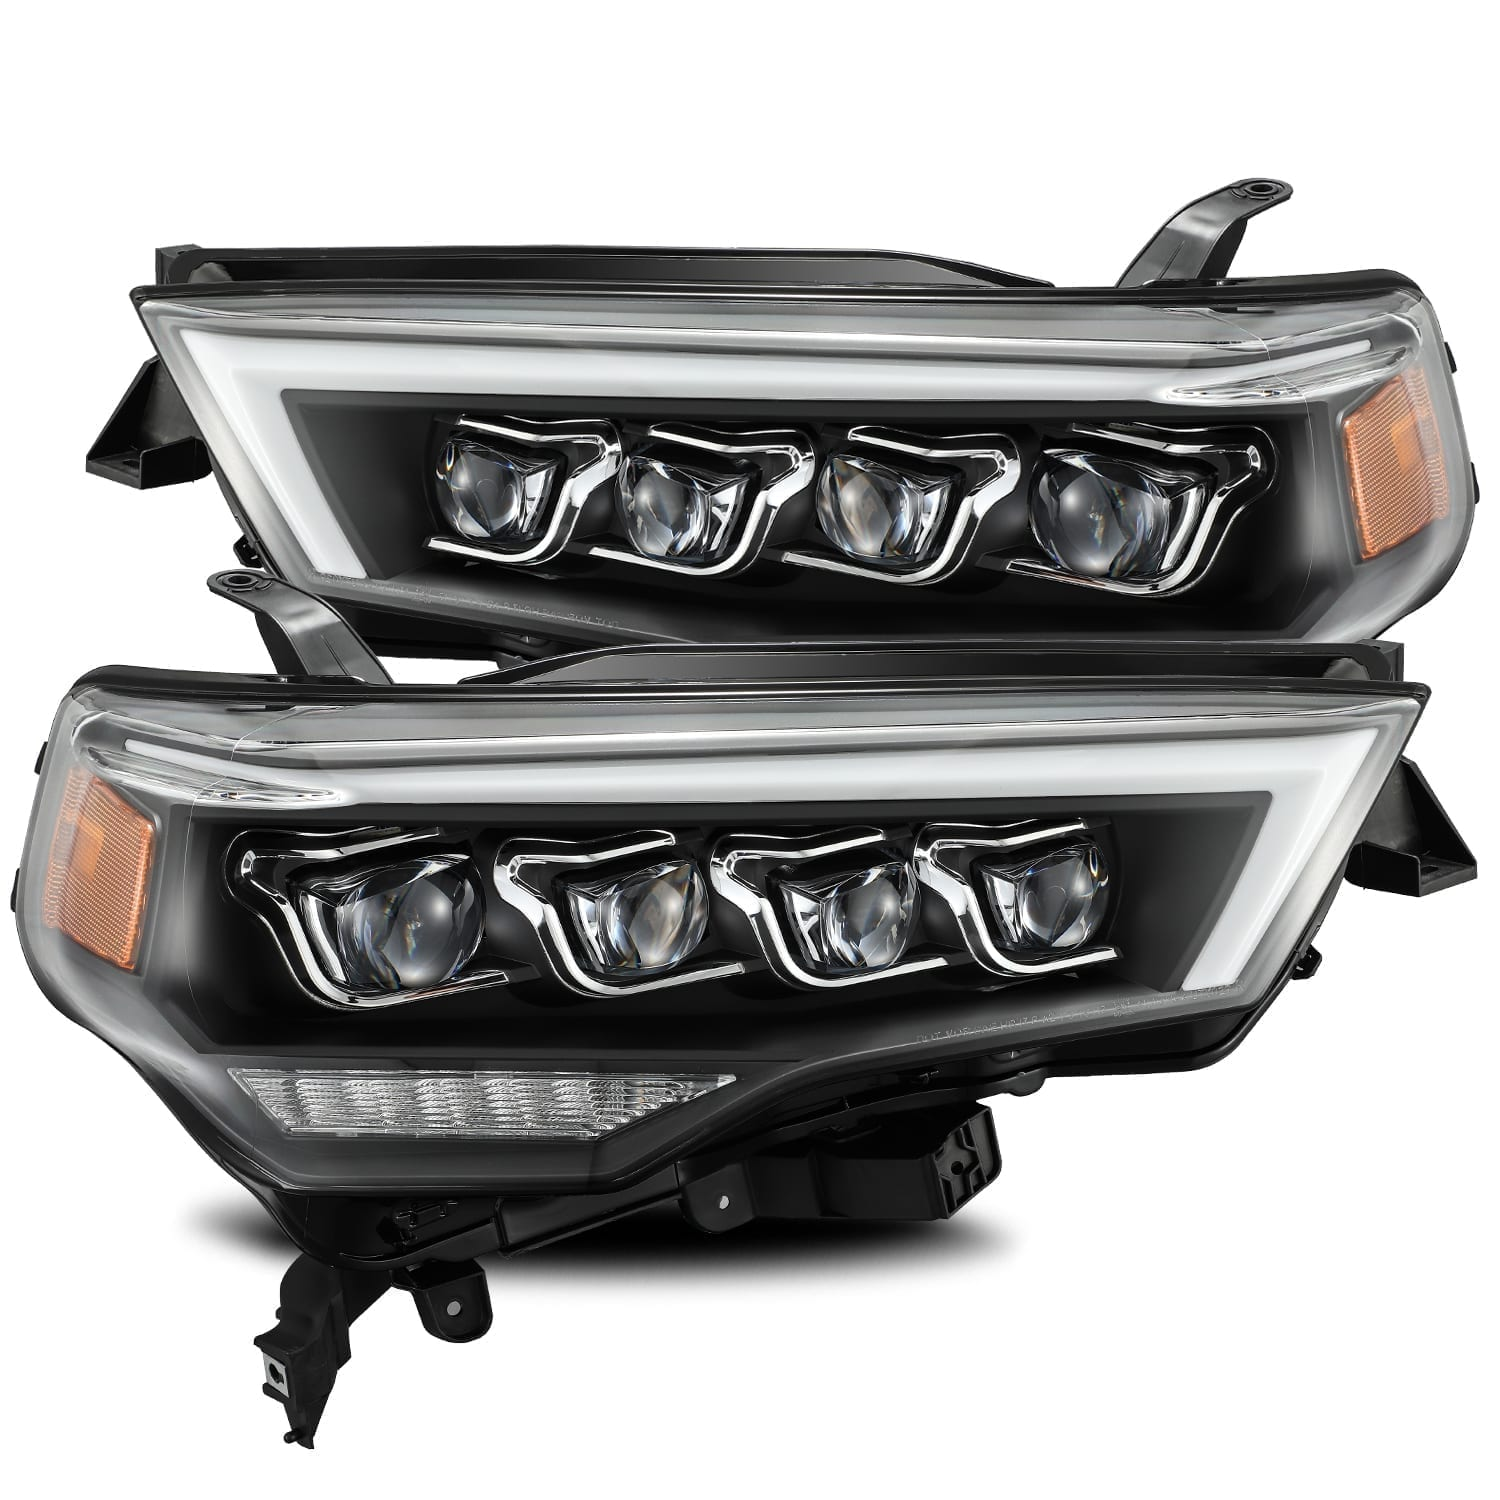 AlphaRex - NOVA-Series LED Projector Headlights Black - Toyota 4Runner 5th Gen 2014-2021 - 4x4 Runners